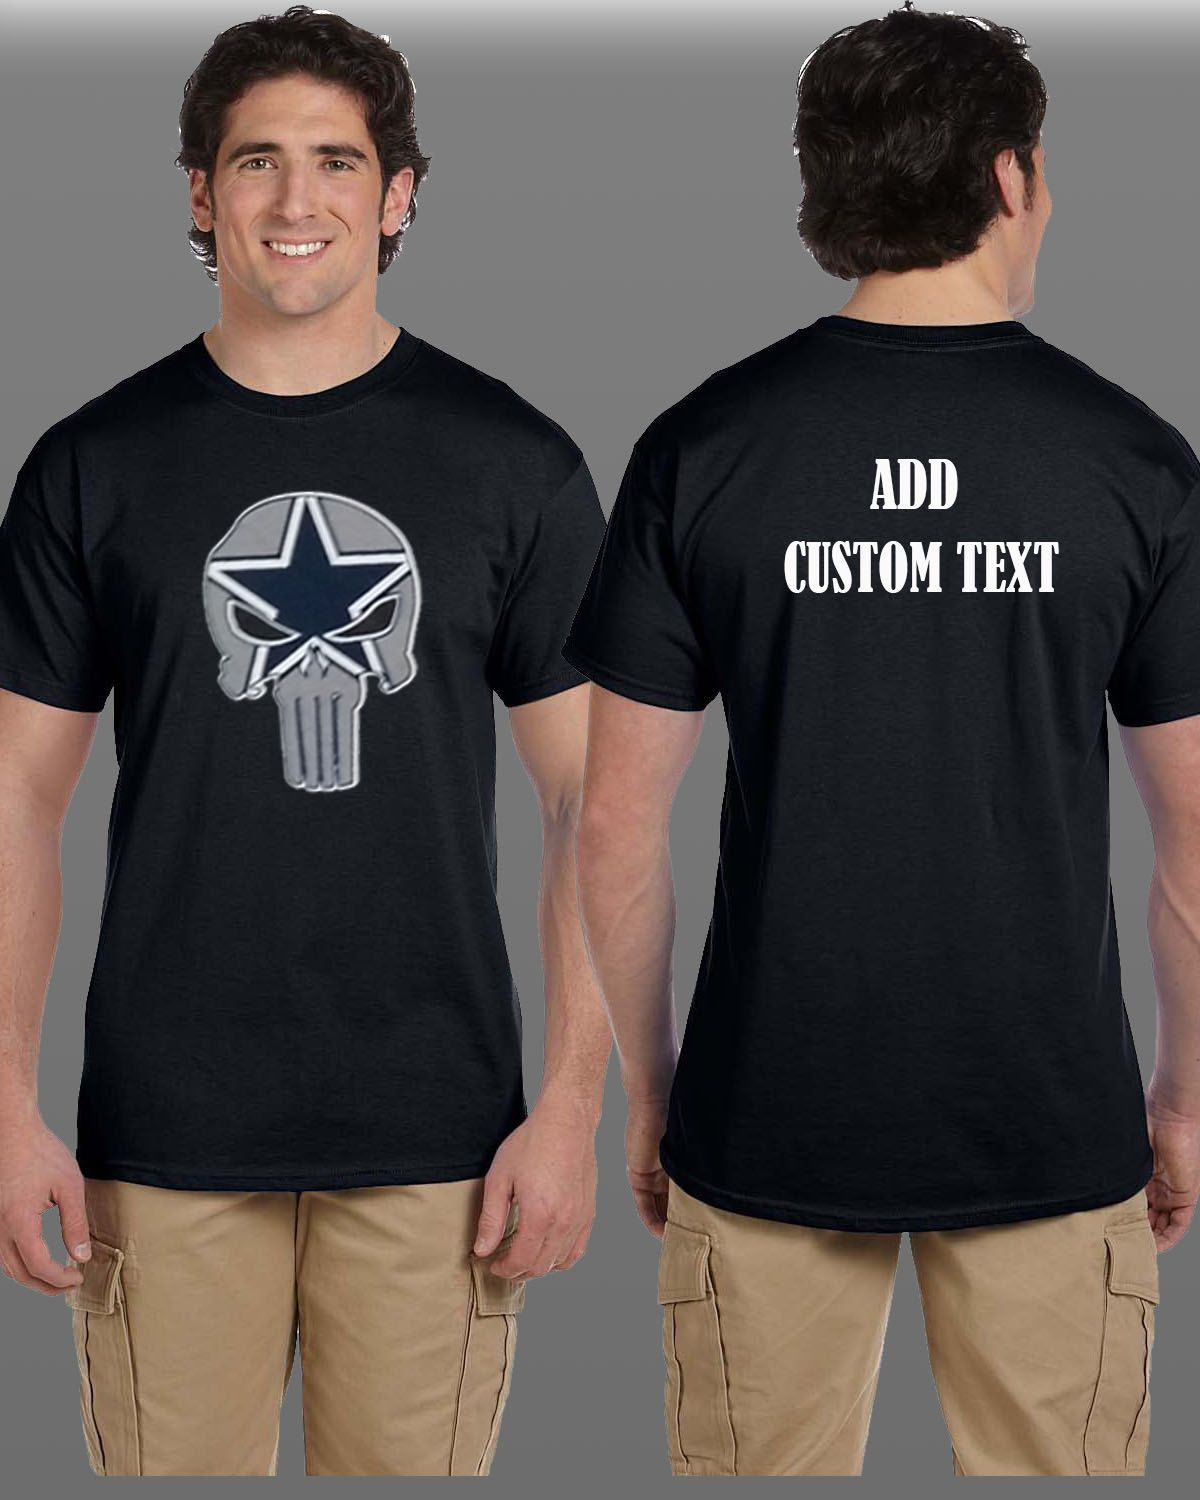 new concept 4e137 3d7c0 Dallas Cowboys Punisher Parody T Shirt We will add whatever ...